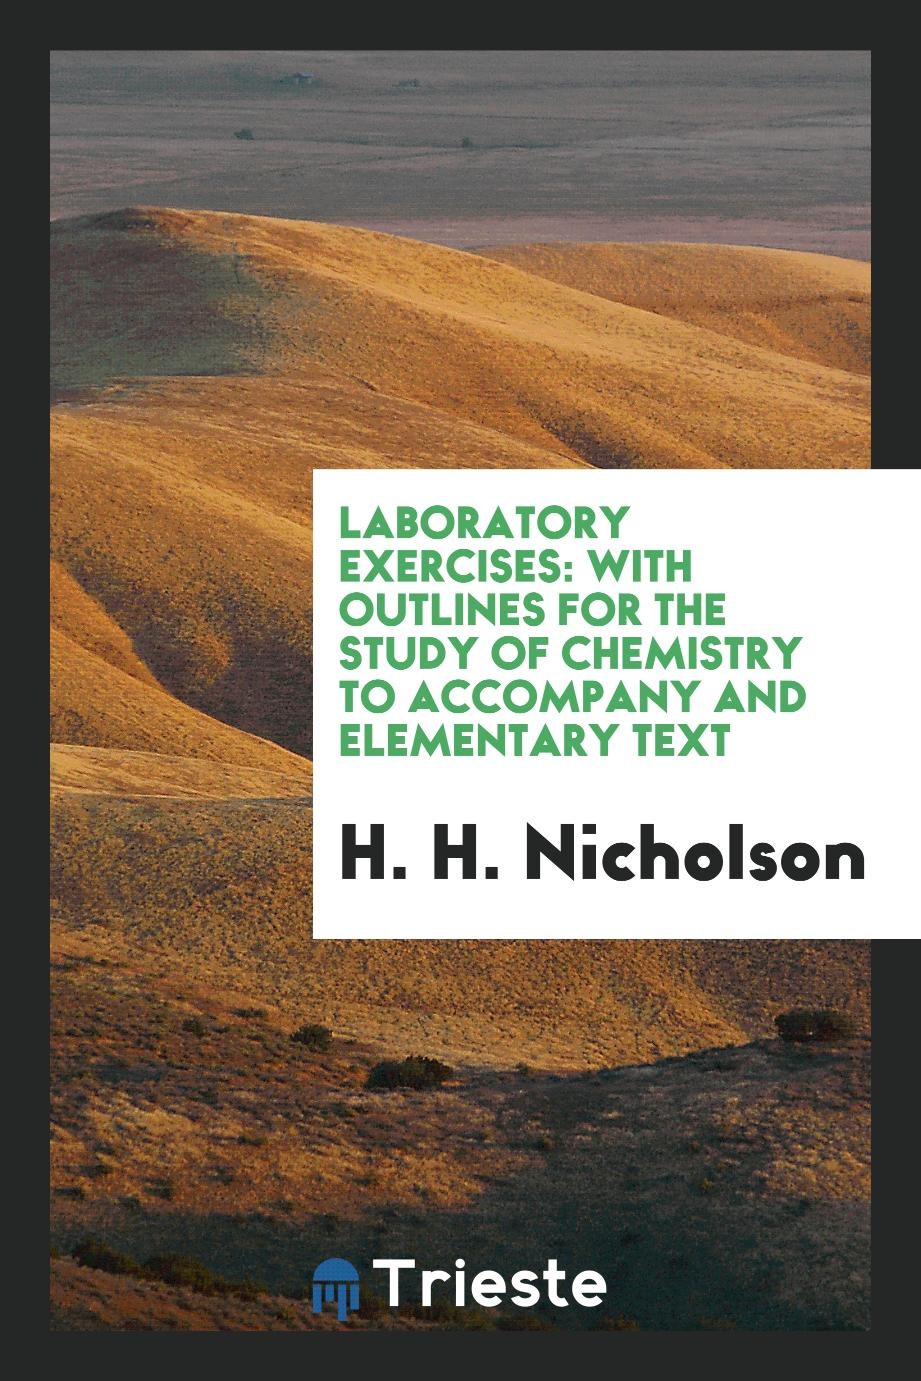 H. H. Nicholson - Laboratory Exercises: With Outlines for the Study of Chemistry to Accompany and Elementary Text